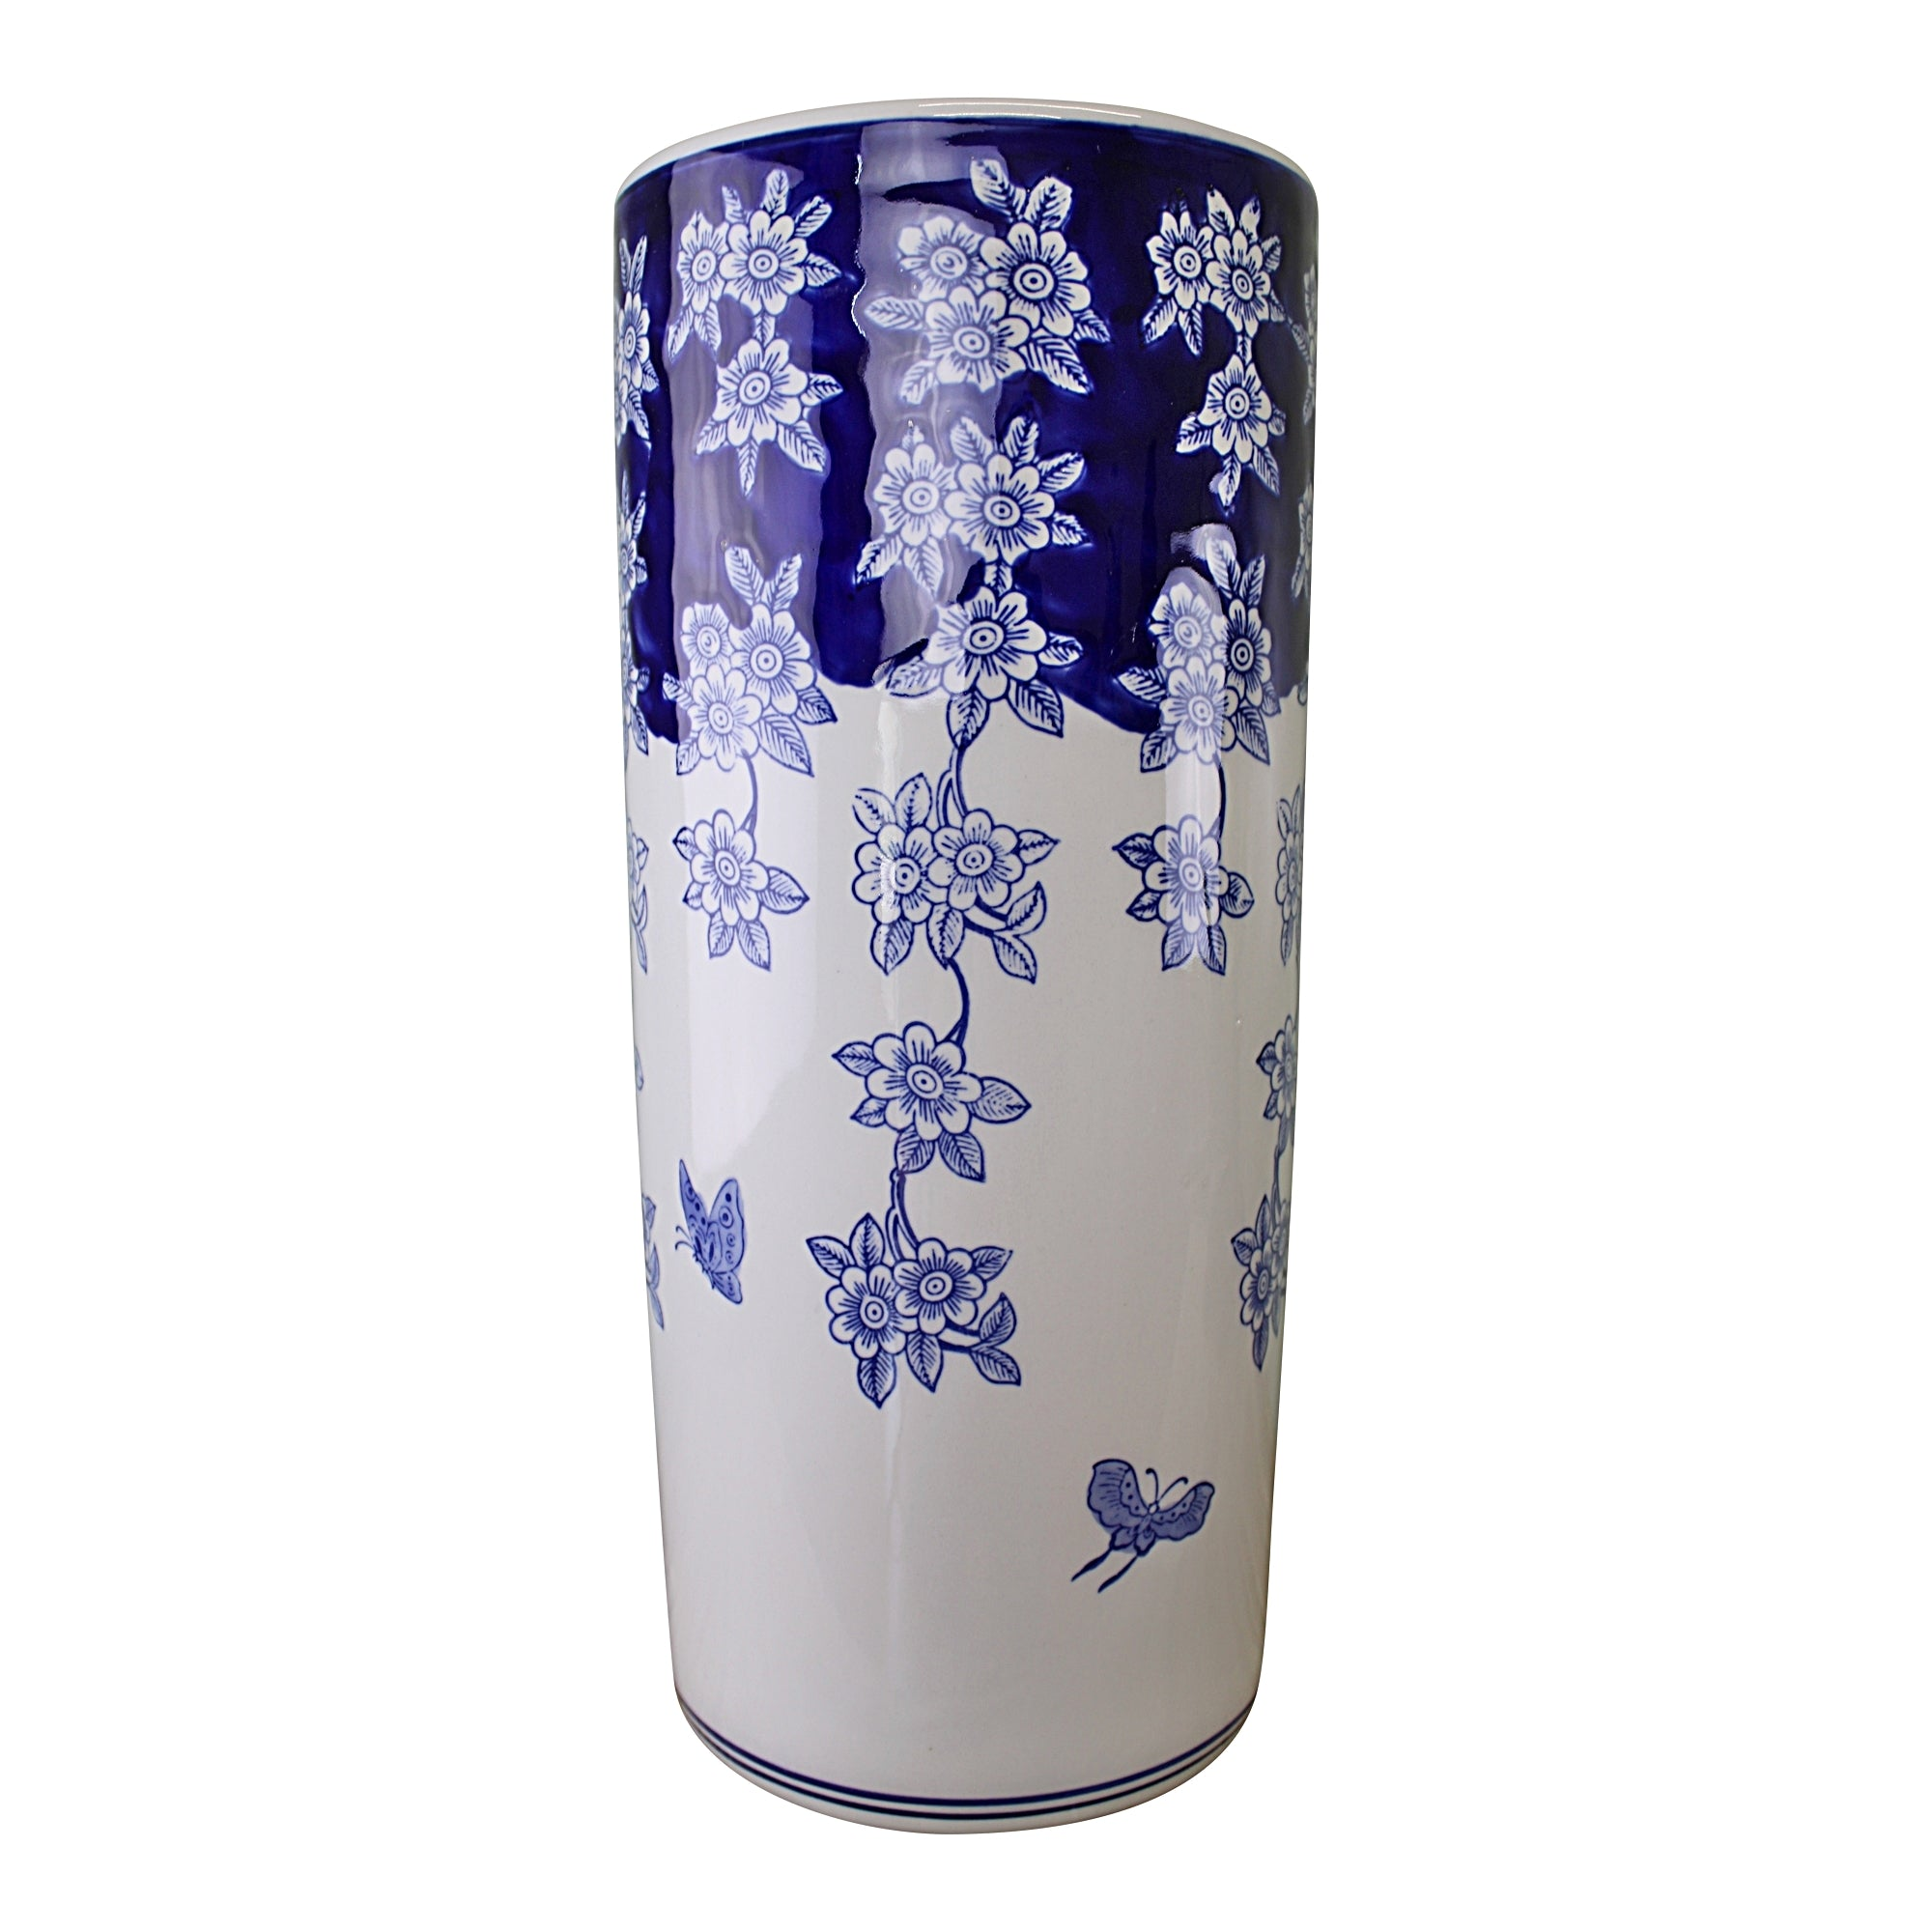 Umbrella Stand, Vintage Blue & White Flowers and Butterfly Design, Parasols & Rain Umbrellas by Low Cost Gifts